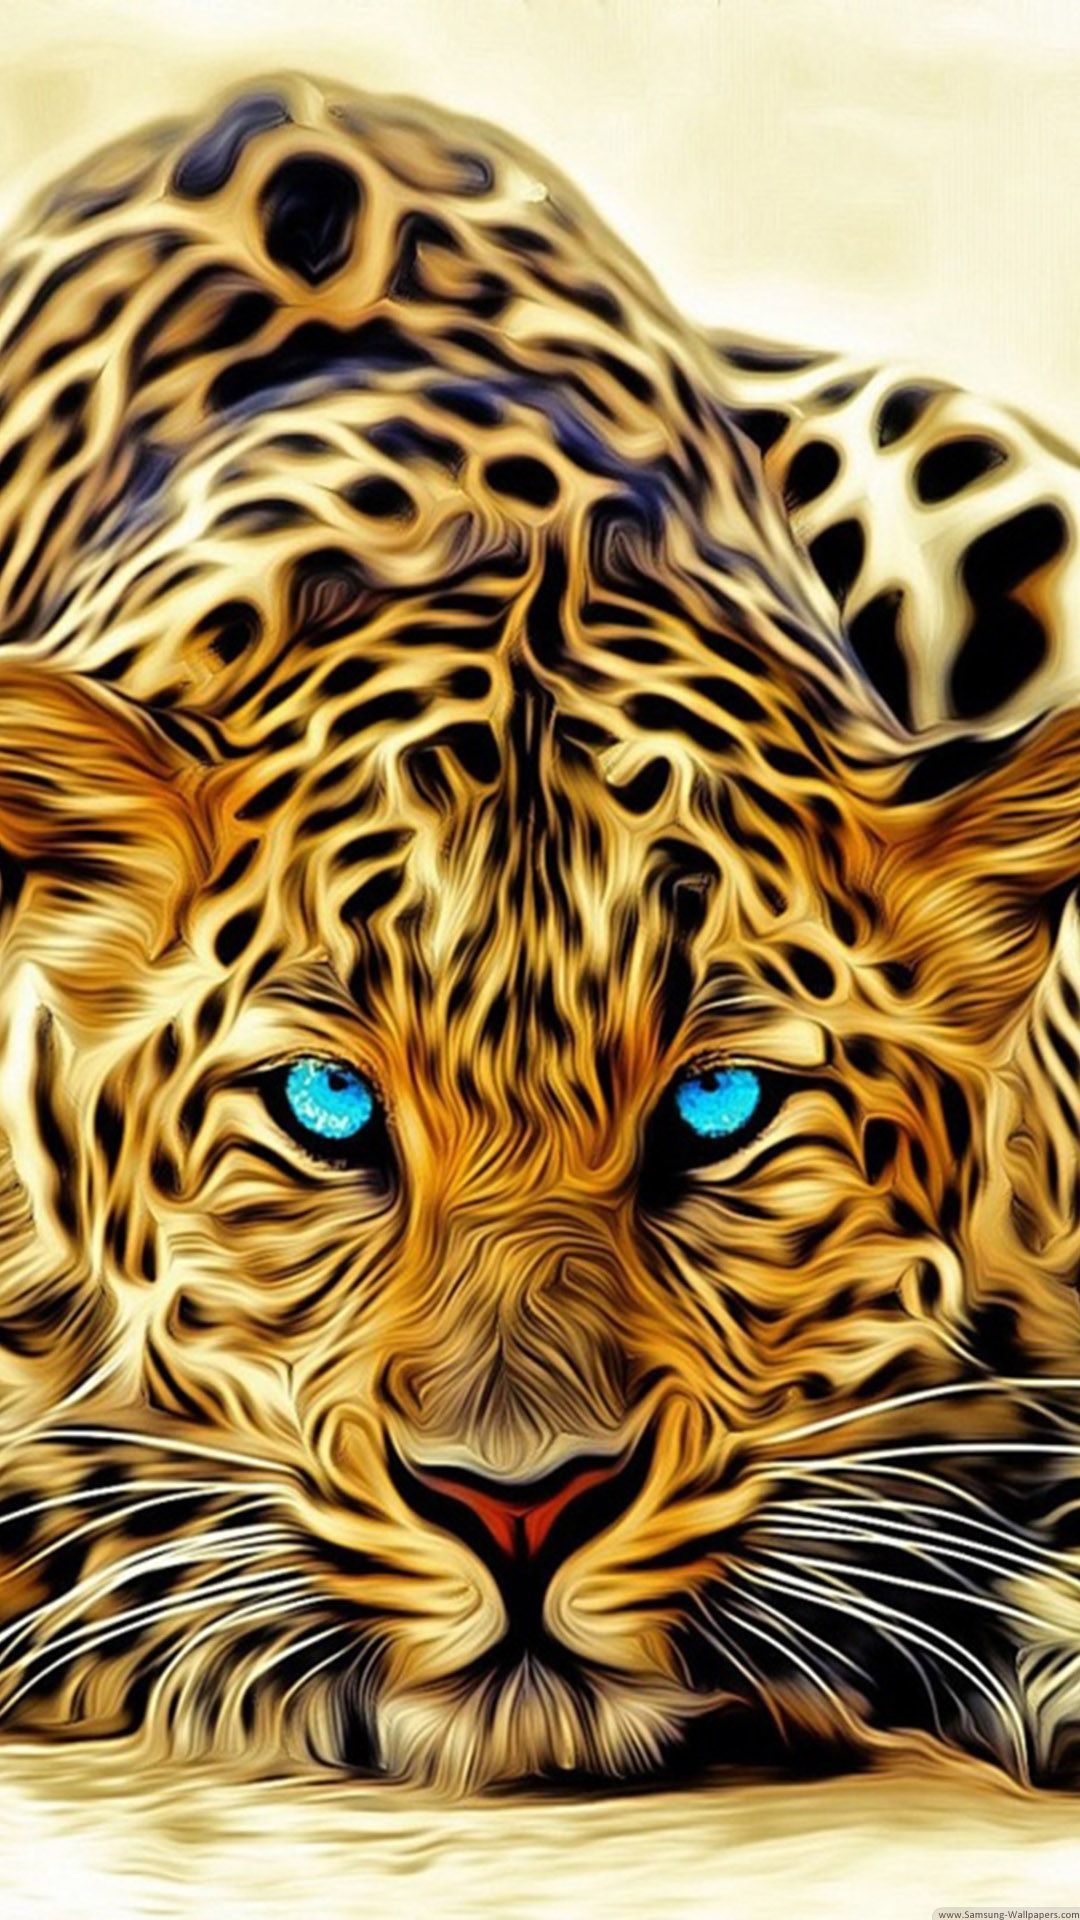 1080x1920 3d animal tiger iphone 6 hd images free download